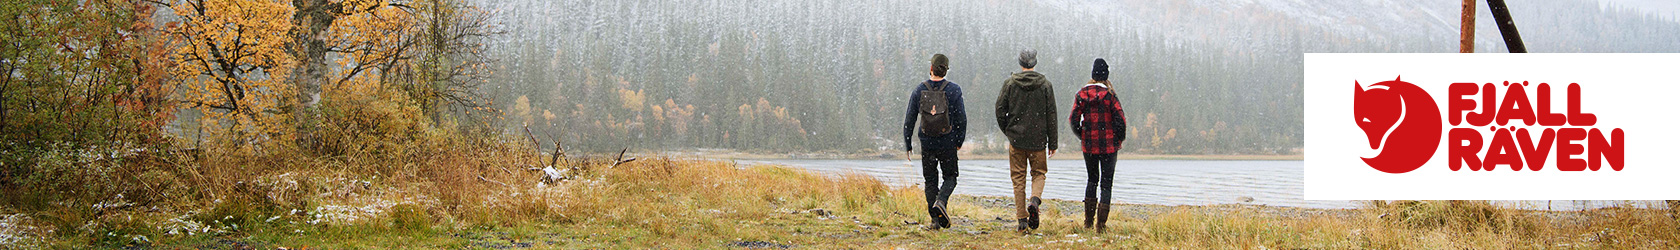 Three people are walking away from the camera and towards the lake, surrounded by mountains and trees, wearing Fjallraven gear.